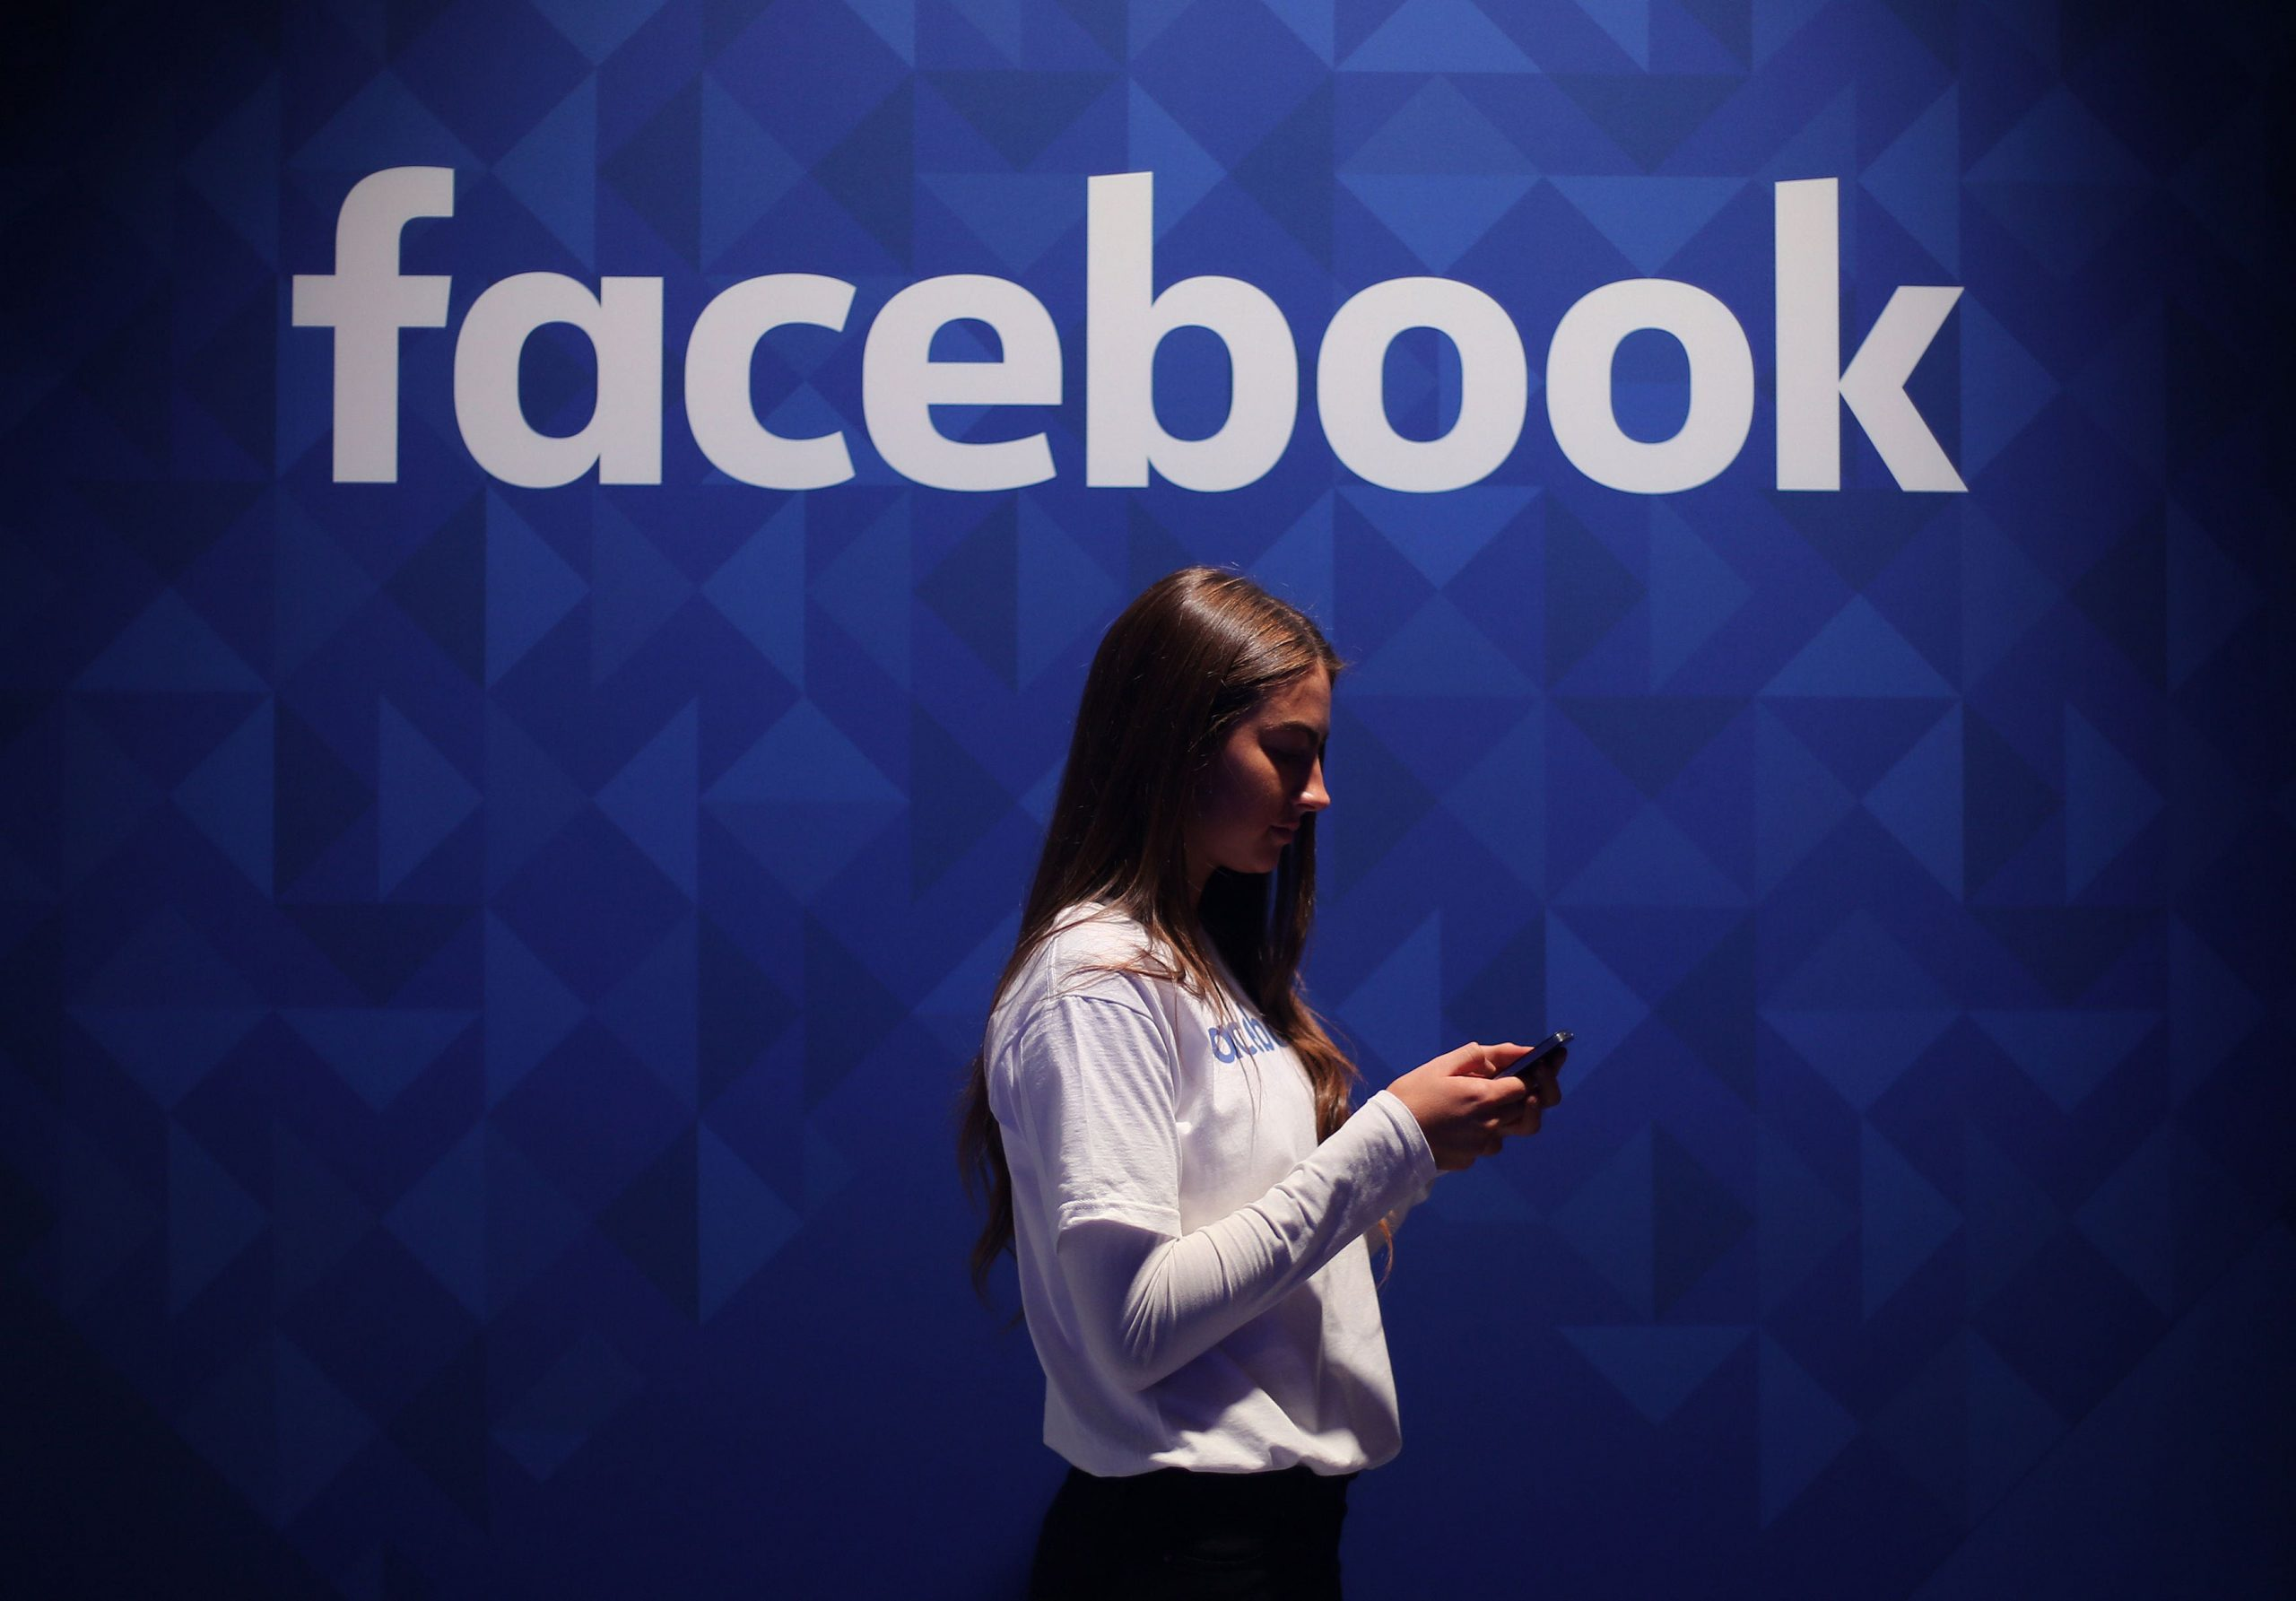 Read more about the article Regulator to investigate Facebook's use of data over 'unfair advantage' concerns